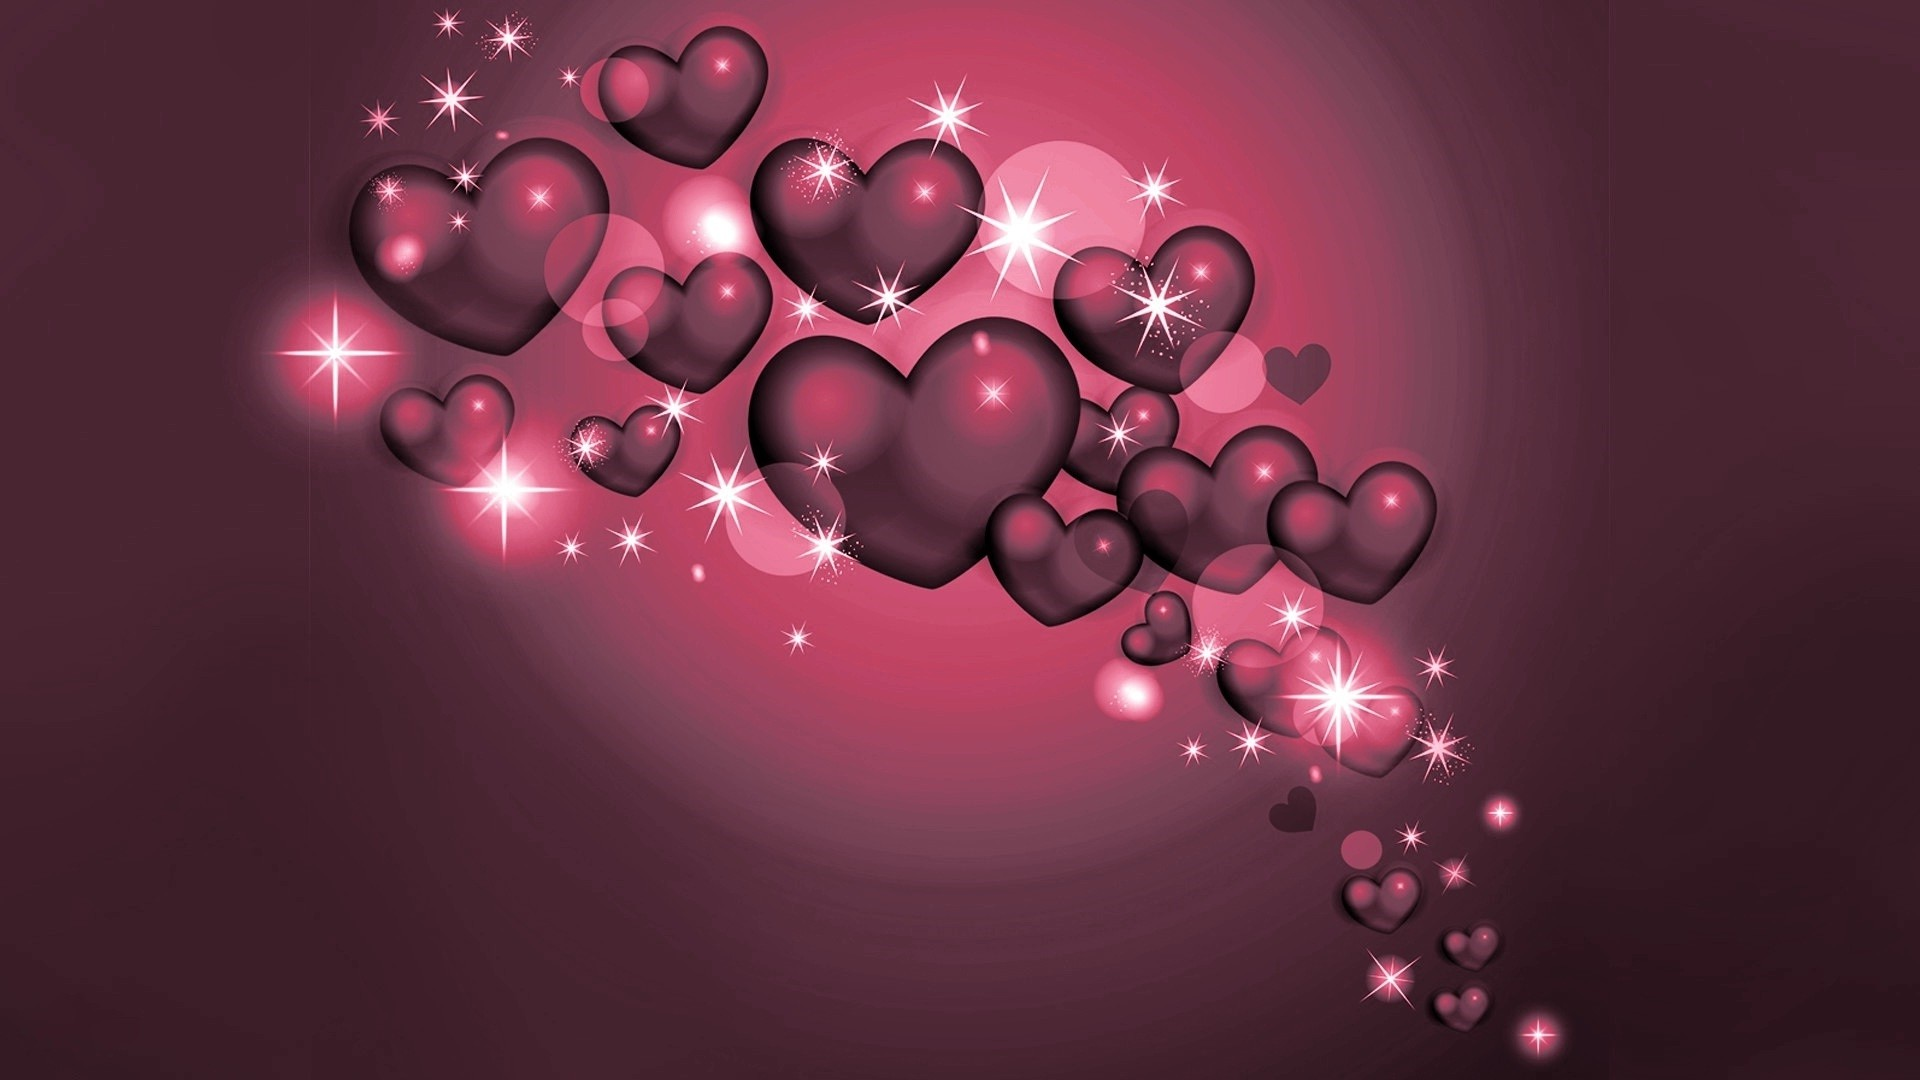 Free Download Beautiful Romantic Love Wallpapers Download 59 New